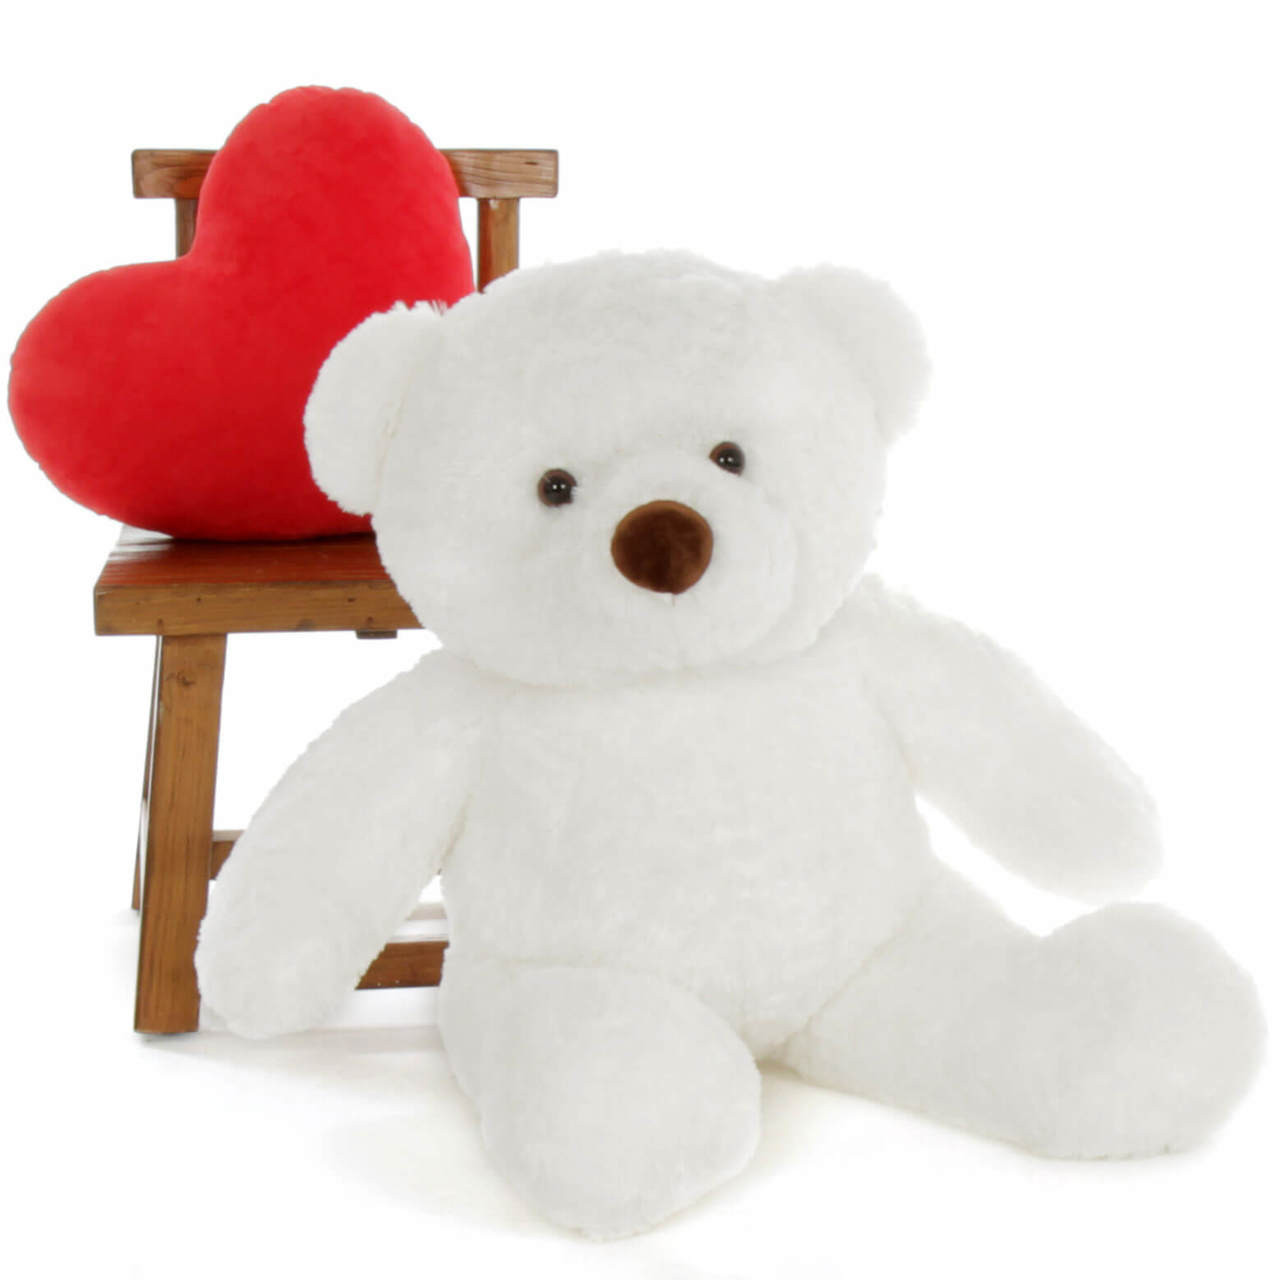 Sprinkle Chubs Huge White Teddy Bear 3Ft (Clock and Prop NOT included)